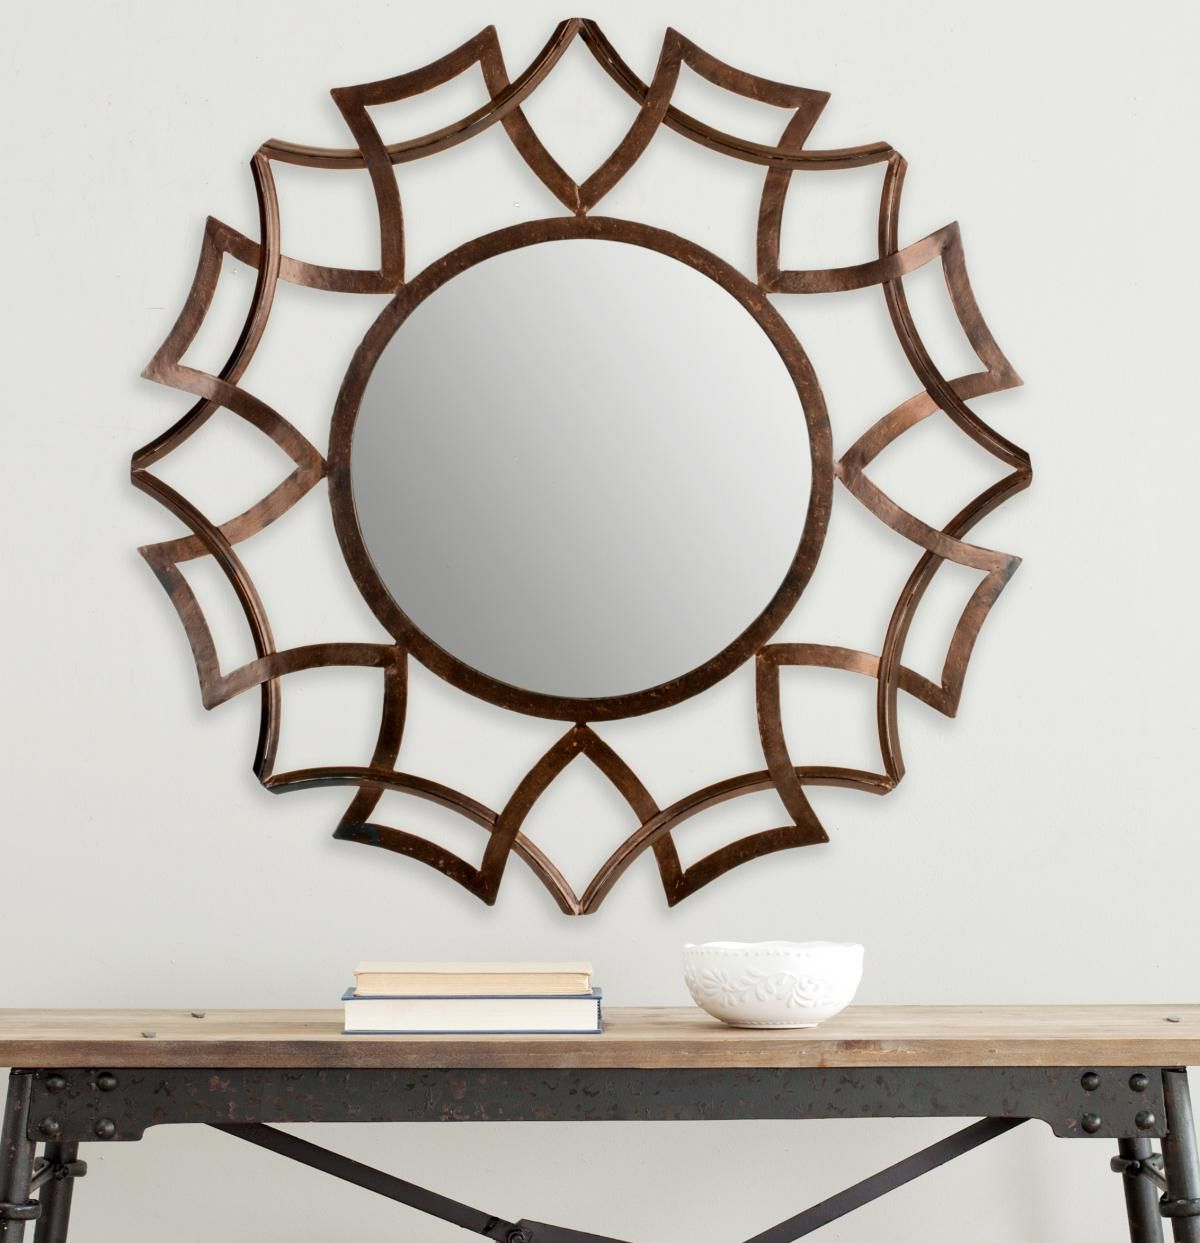 Most Recent Liliana Gold Iron Glass Mirror – Artofit With Brylee Traditional Sunburst Mirrors (View 14 of 20)